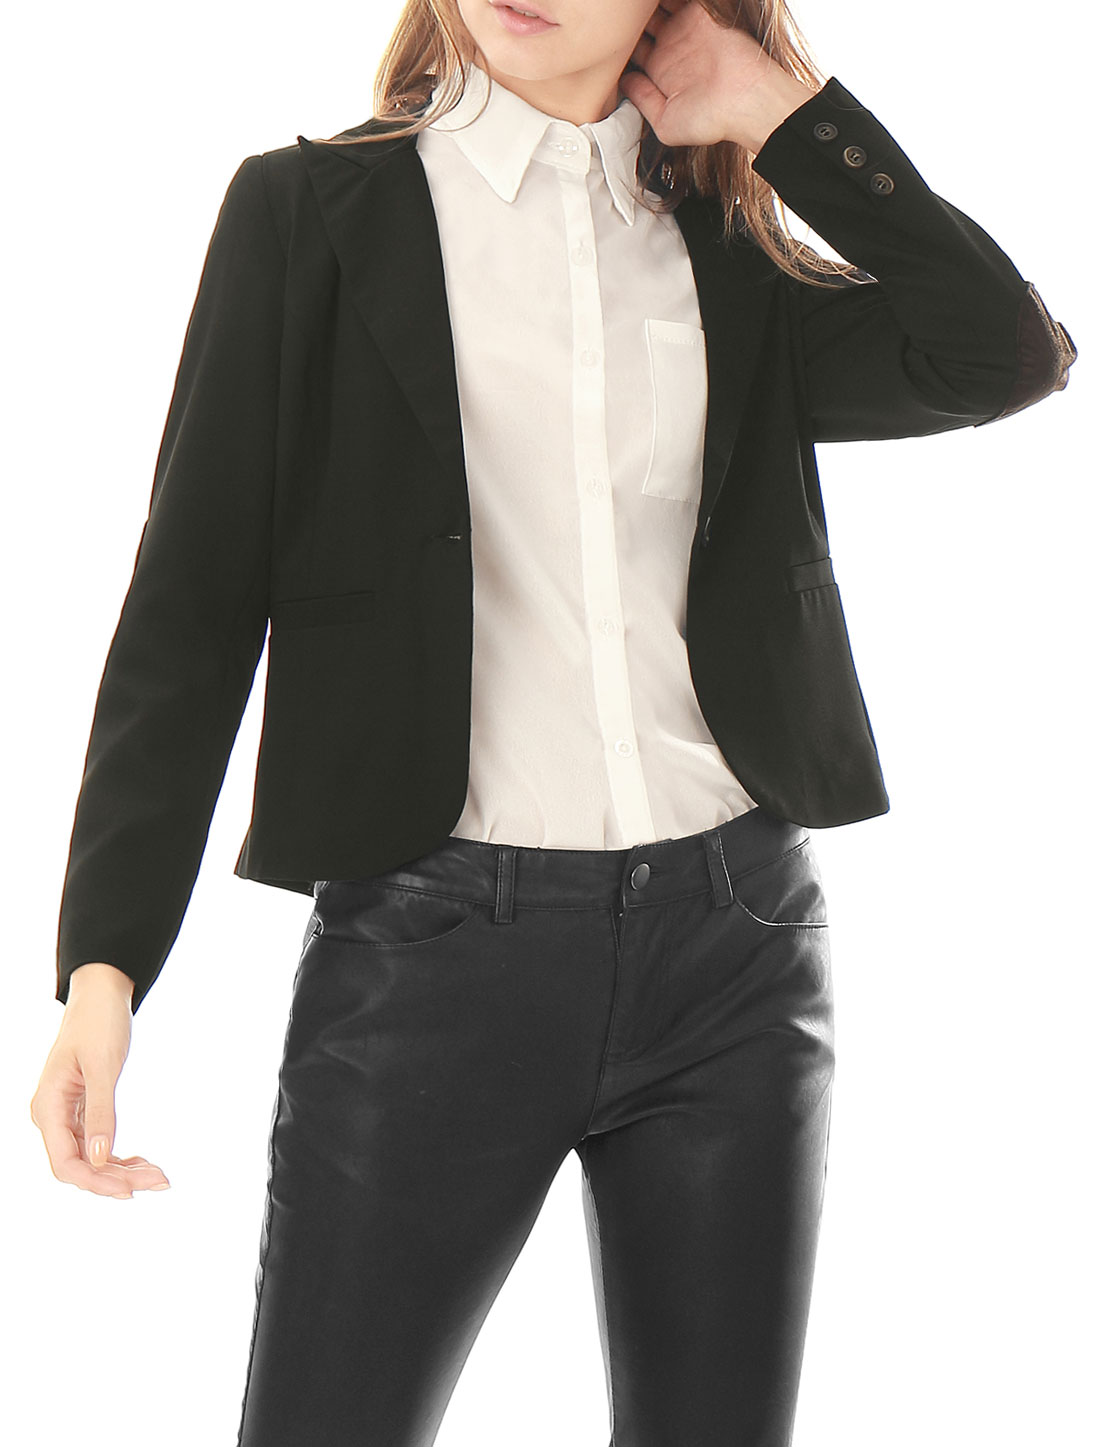 Allegra K Women Peaked Lapel One-Button Elbow-Patch Blazer Black XL